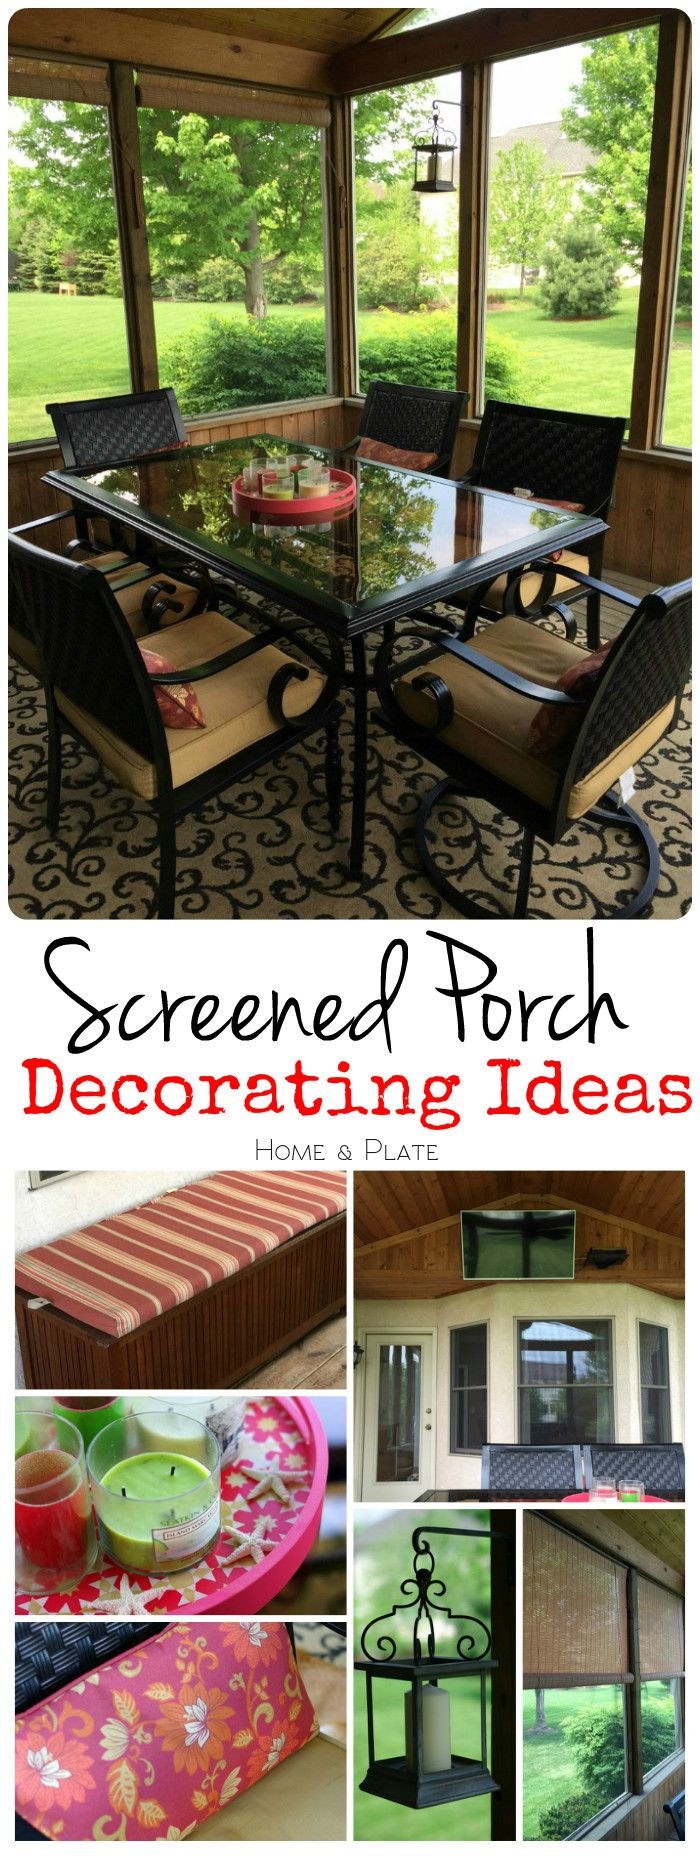 10 Best Ideas About Screen Porch Decorating On Pinterest